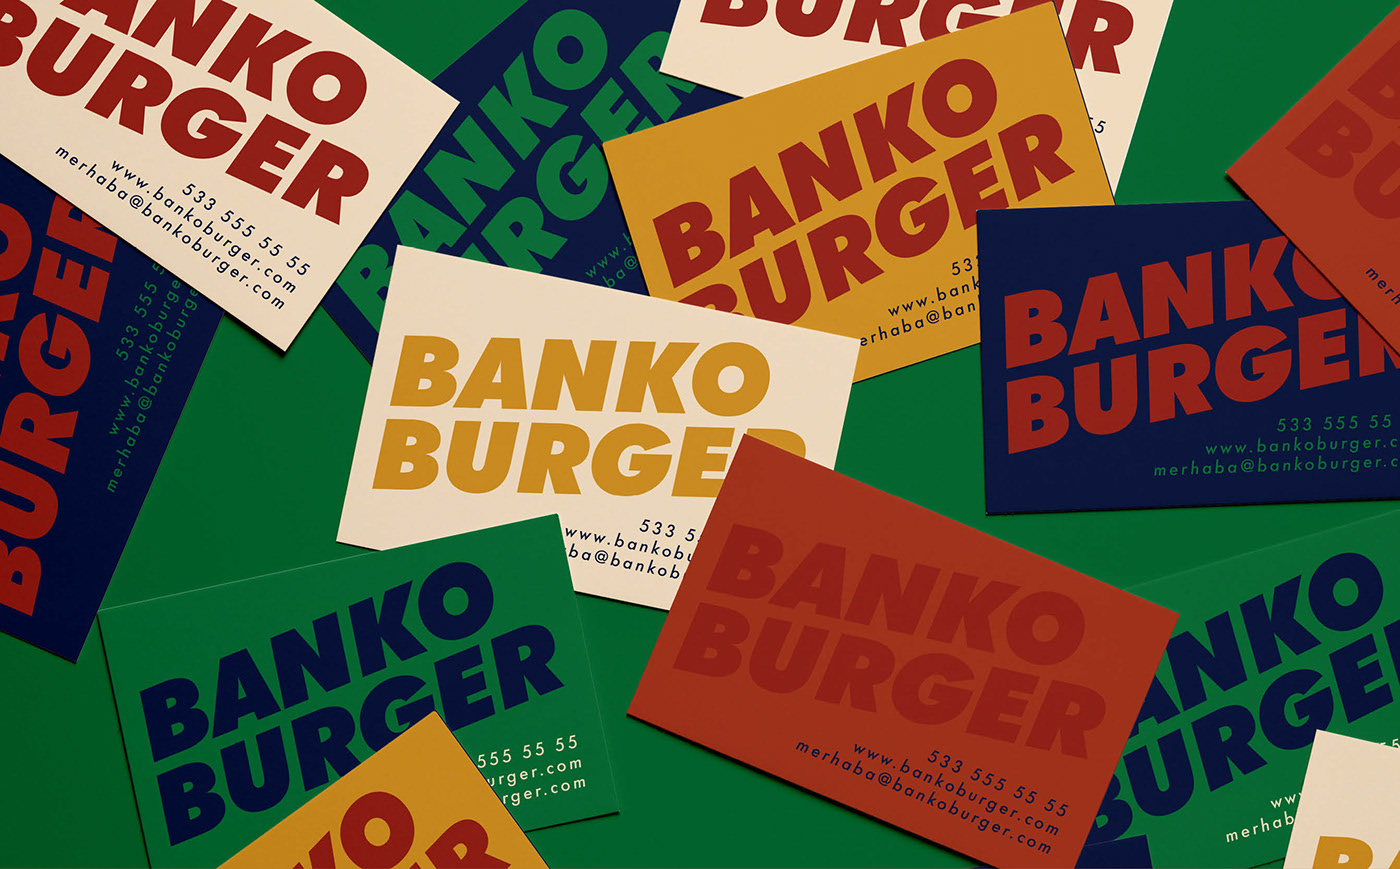 Banko Burger Business Card